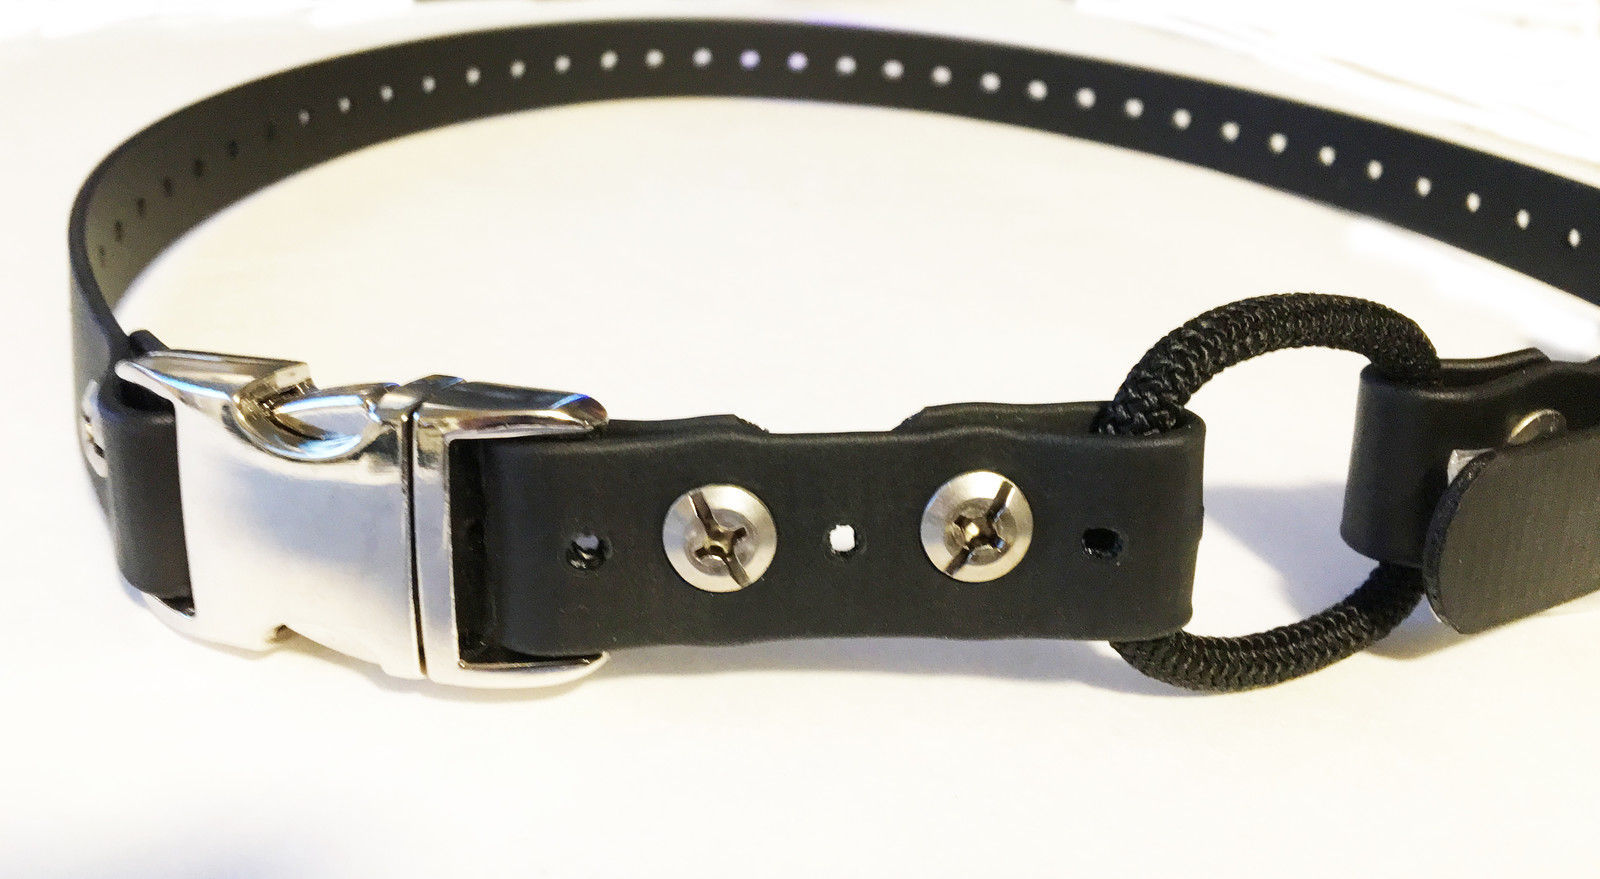 "E Collar 3/4"" Silver Metal Quick Snap Biothane Bungee Straps, Black 2 Widths"